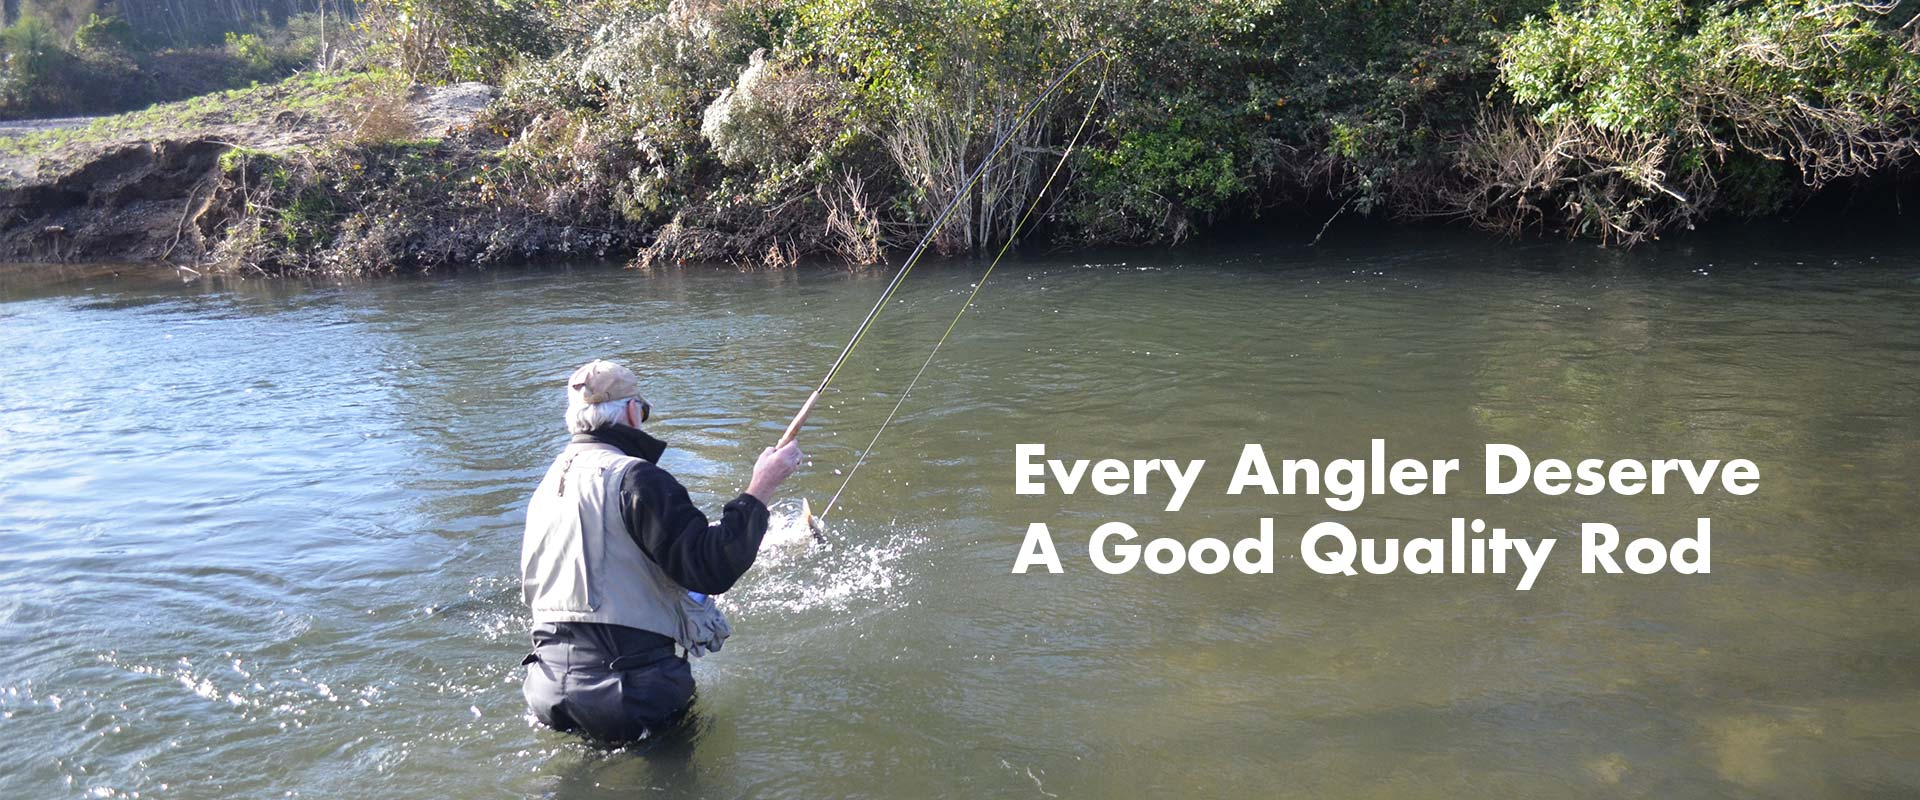 Every Angler Deserve  A Good Quality Rod